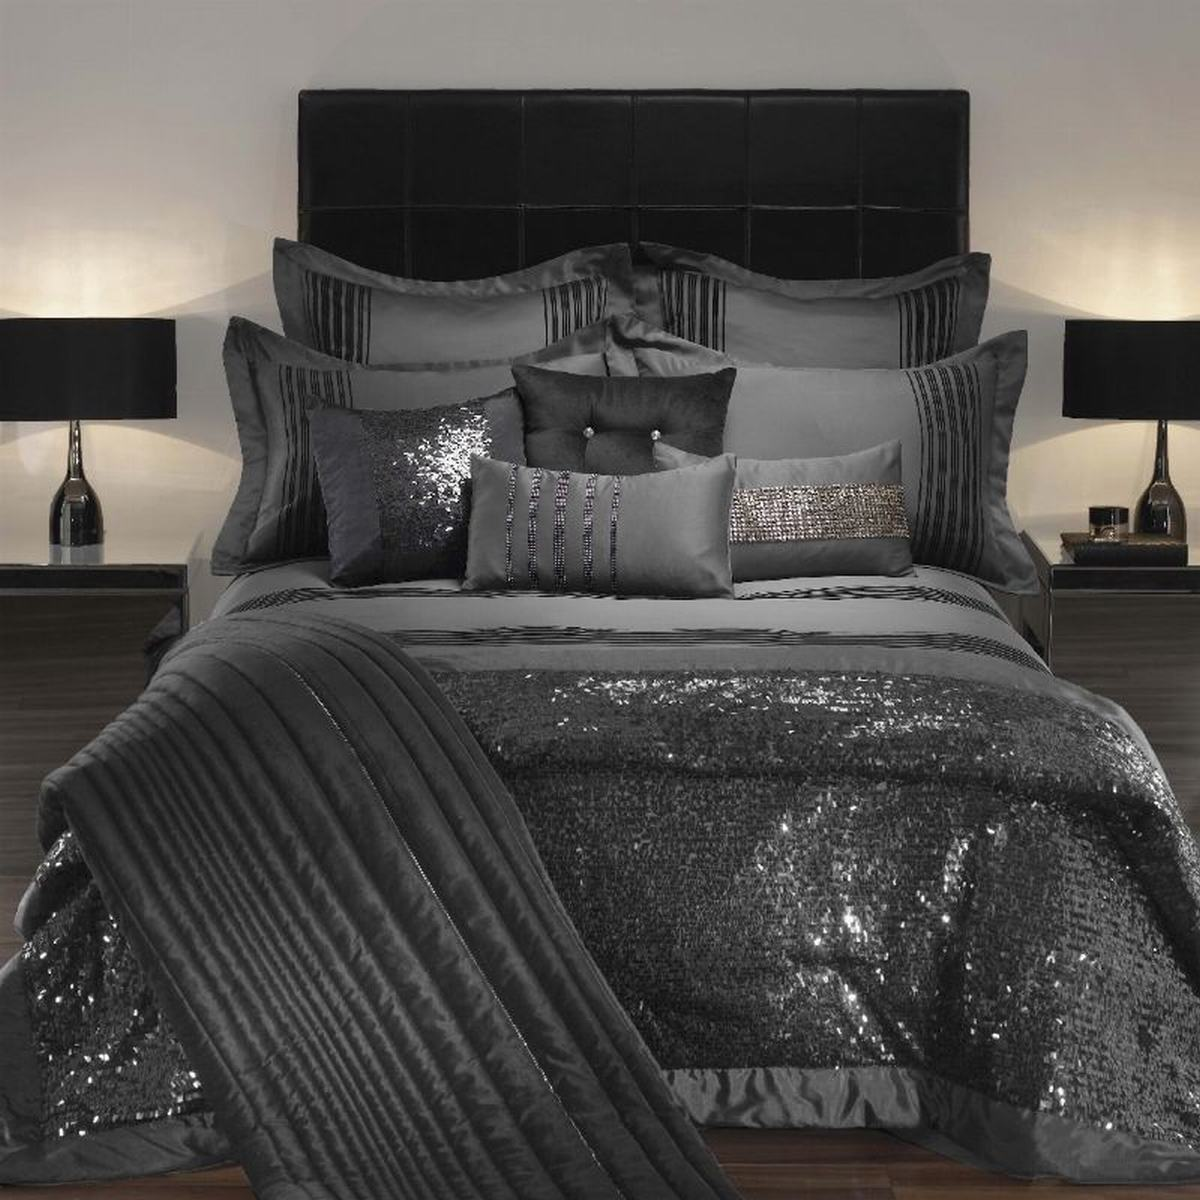 Luxury bed set trends 2014 - Look contemporary luxury bedding ...